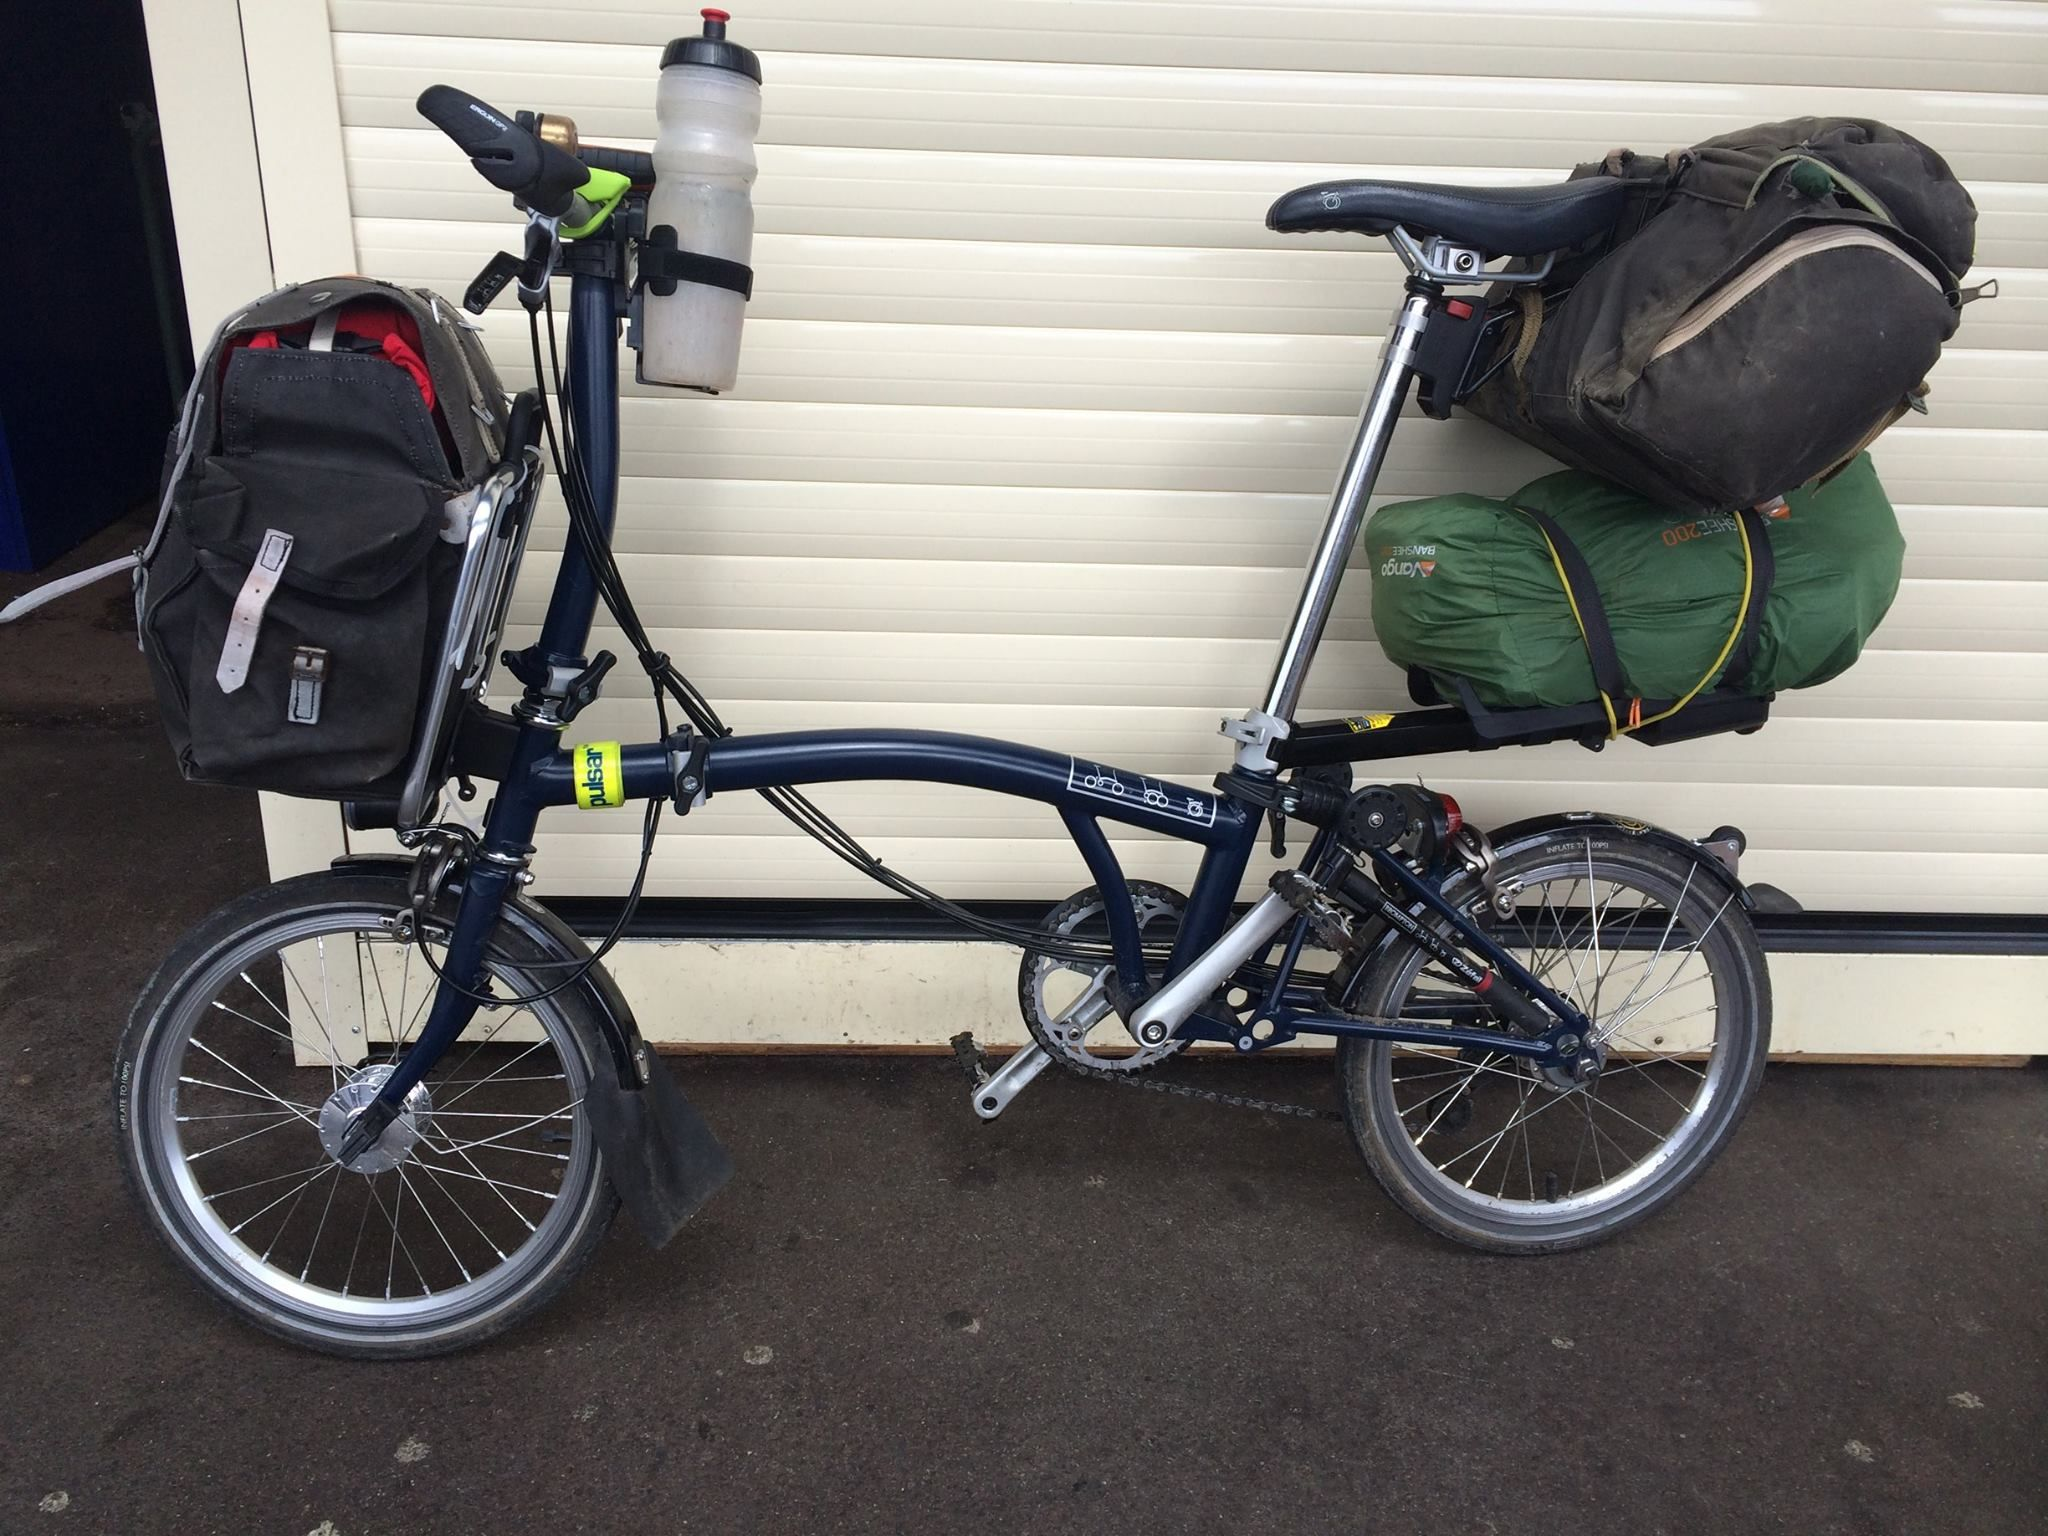 I M A Recent Convert To The Wondrous World Of The Brompton Bicycle